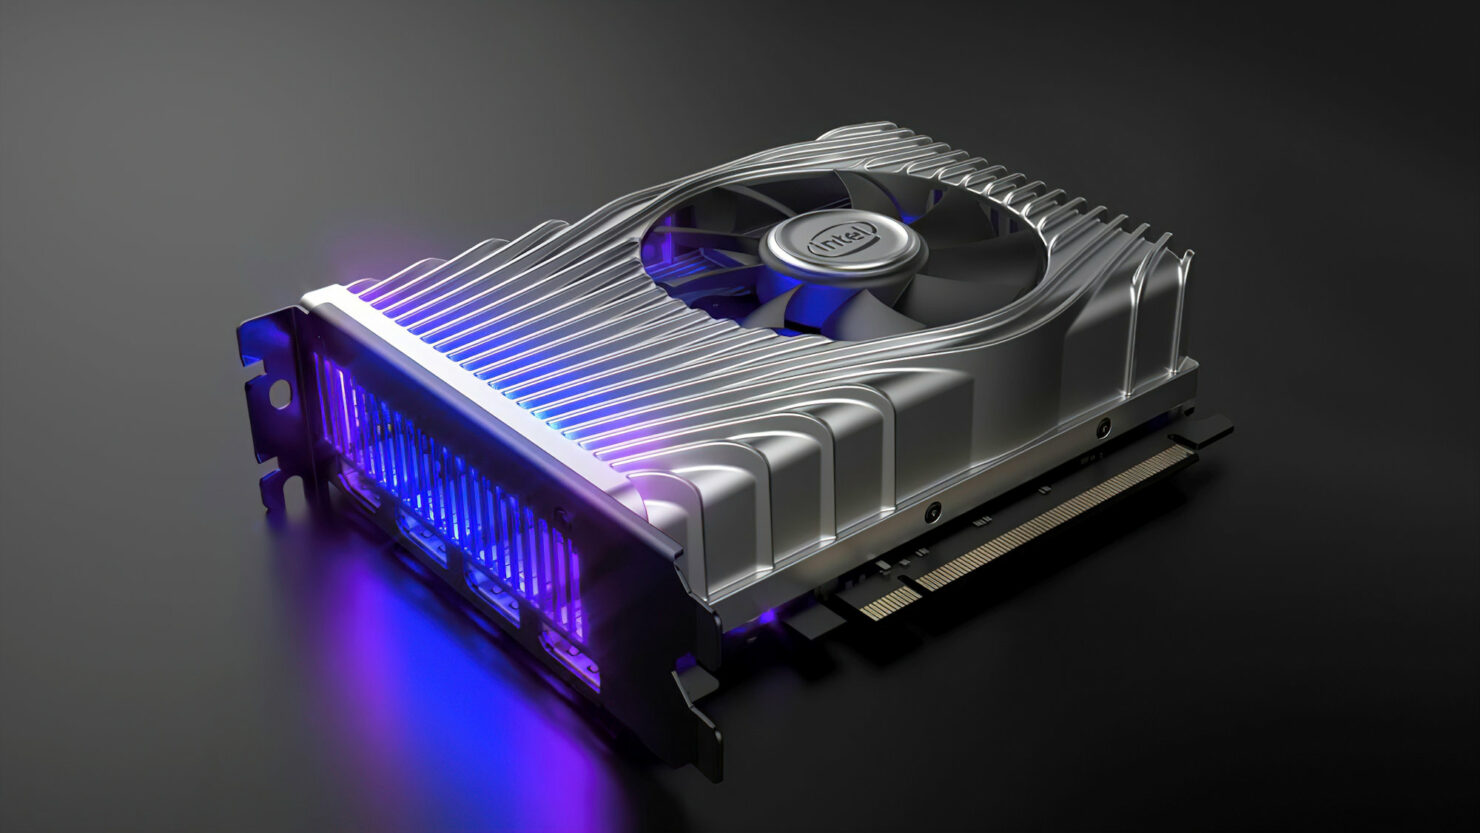 intel-dg1-gpu-discrete-graphics-card-powered-by-xe-graphics-architecture_2